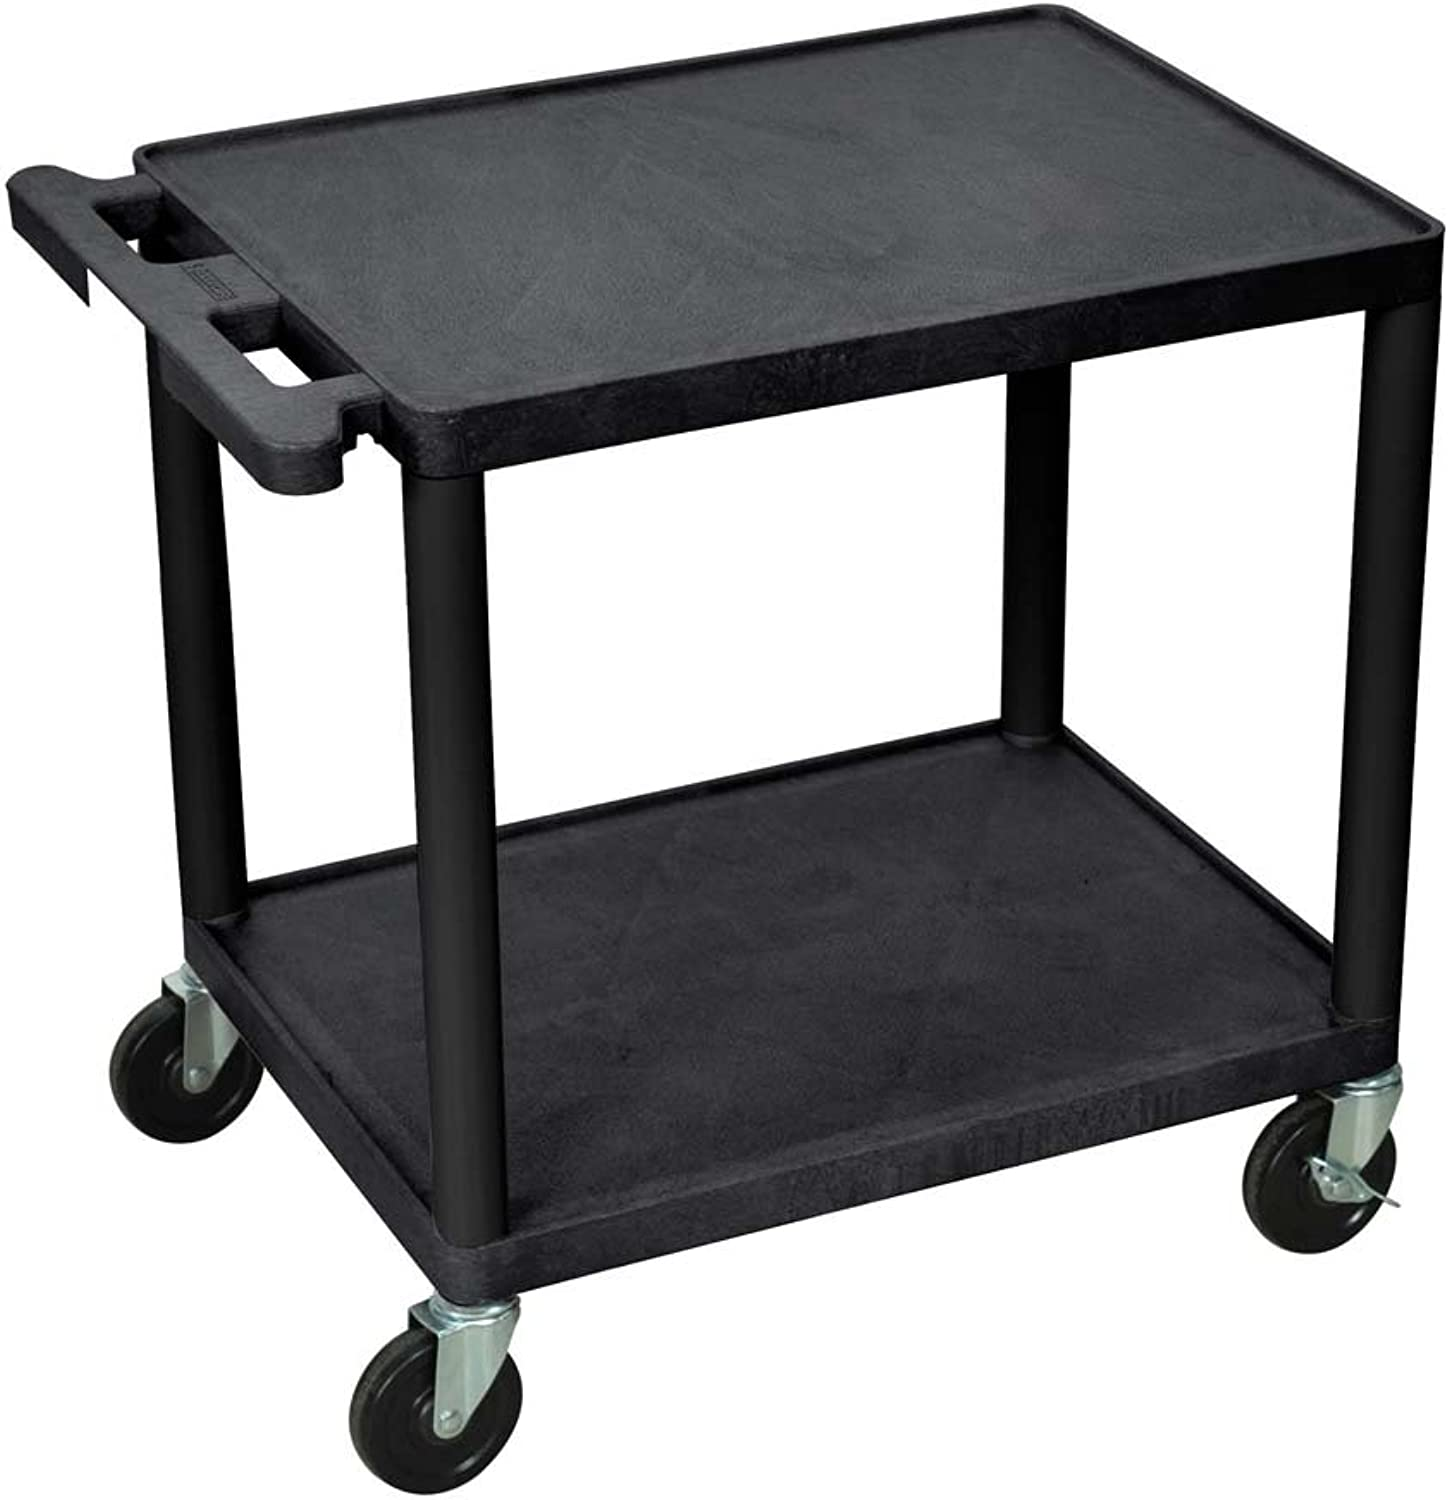 Luxor 26 H Multipurpose 2 Shelves Audio Video Utility Cart - Black